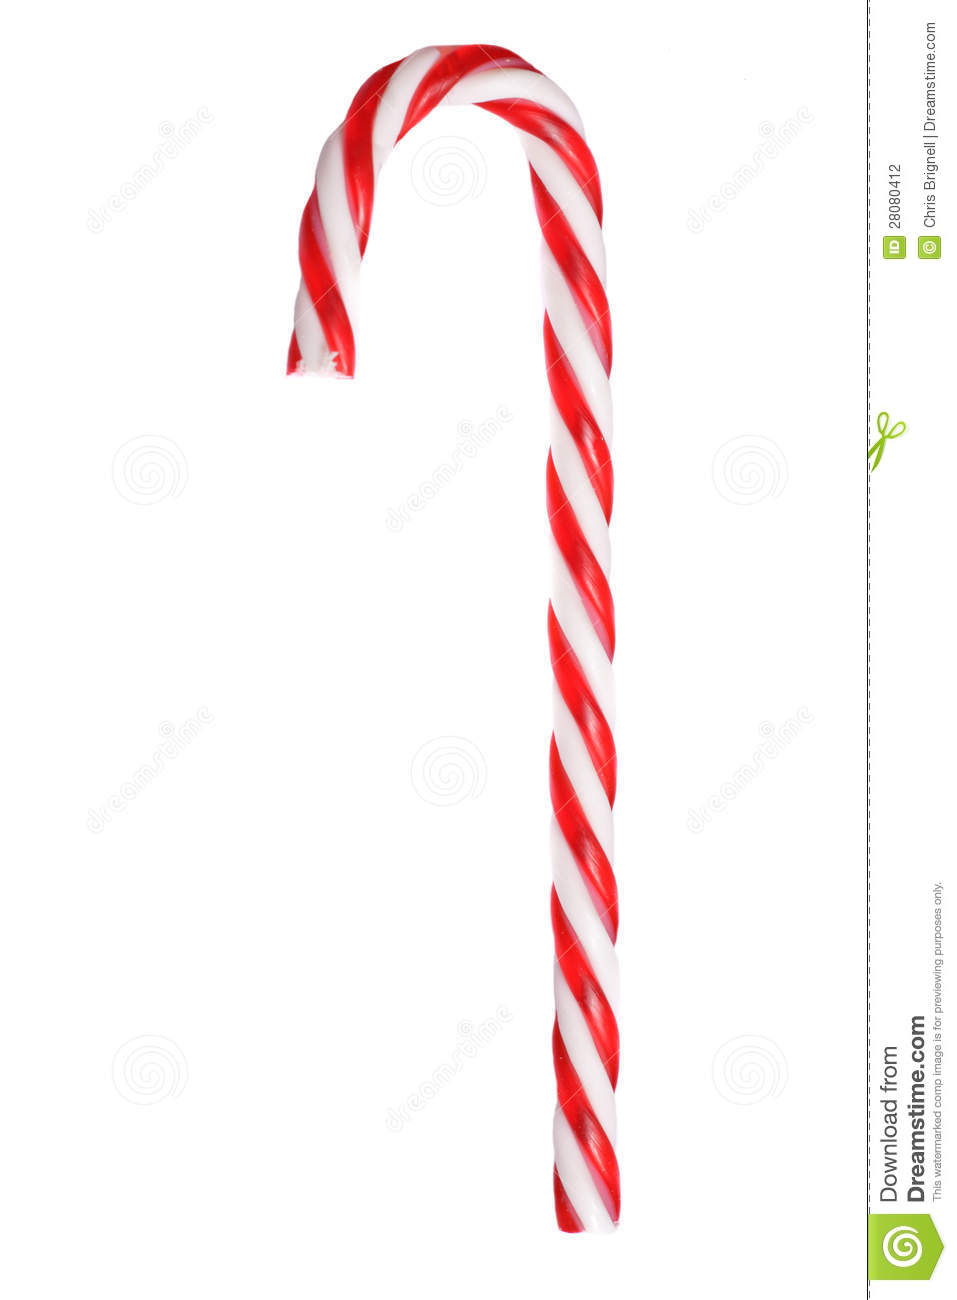 Kitchen utensils clip art pan - Retro Red And White Christmas Candy Cane Stock Photography